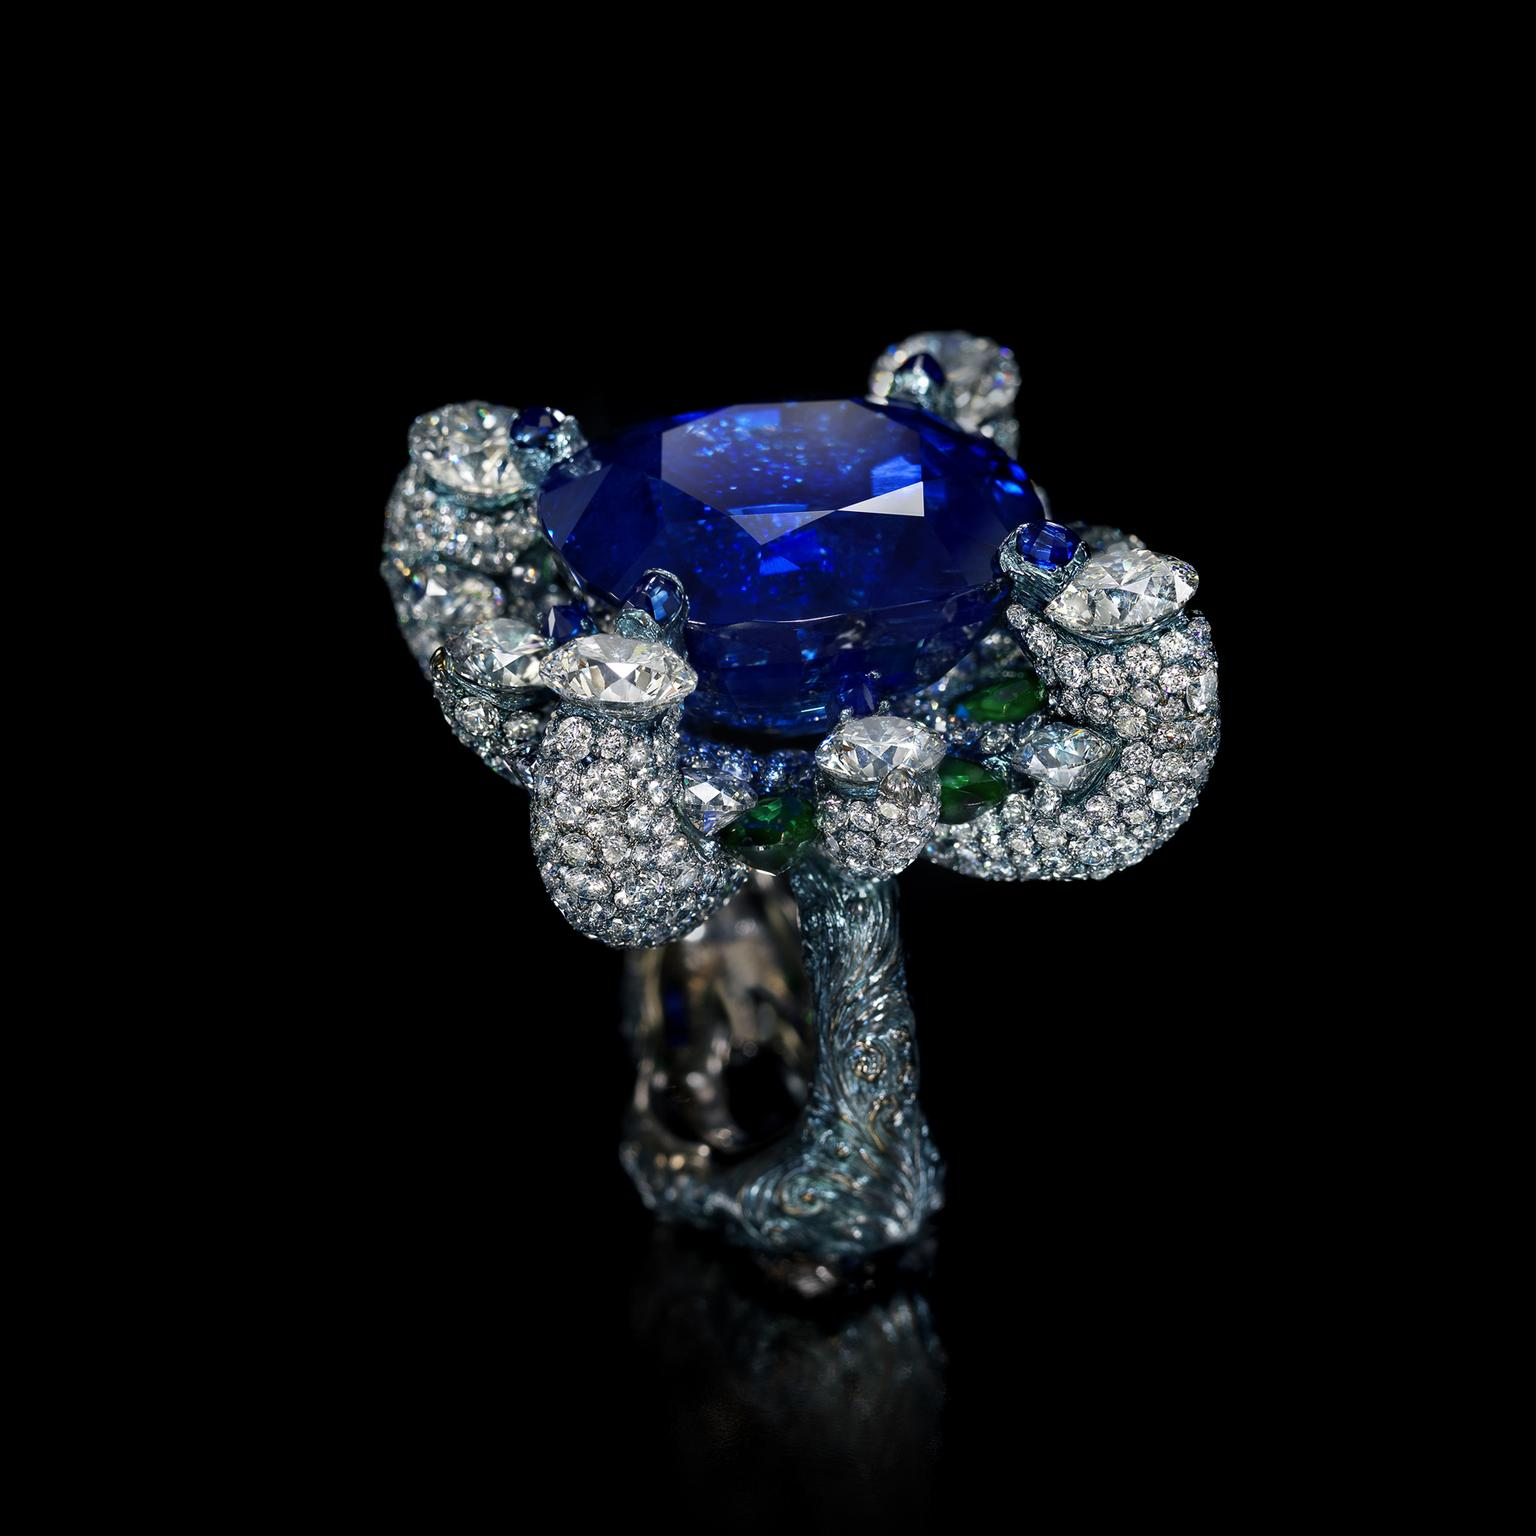 Wallace Chan Beauteous Days sapphire ring in blue titanium